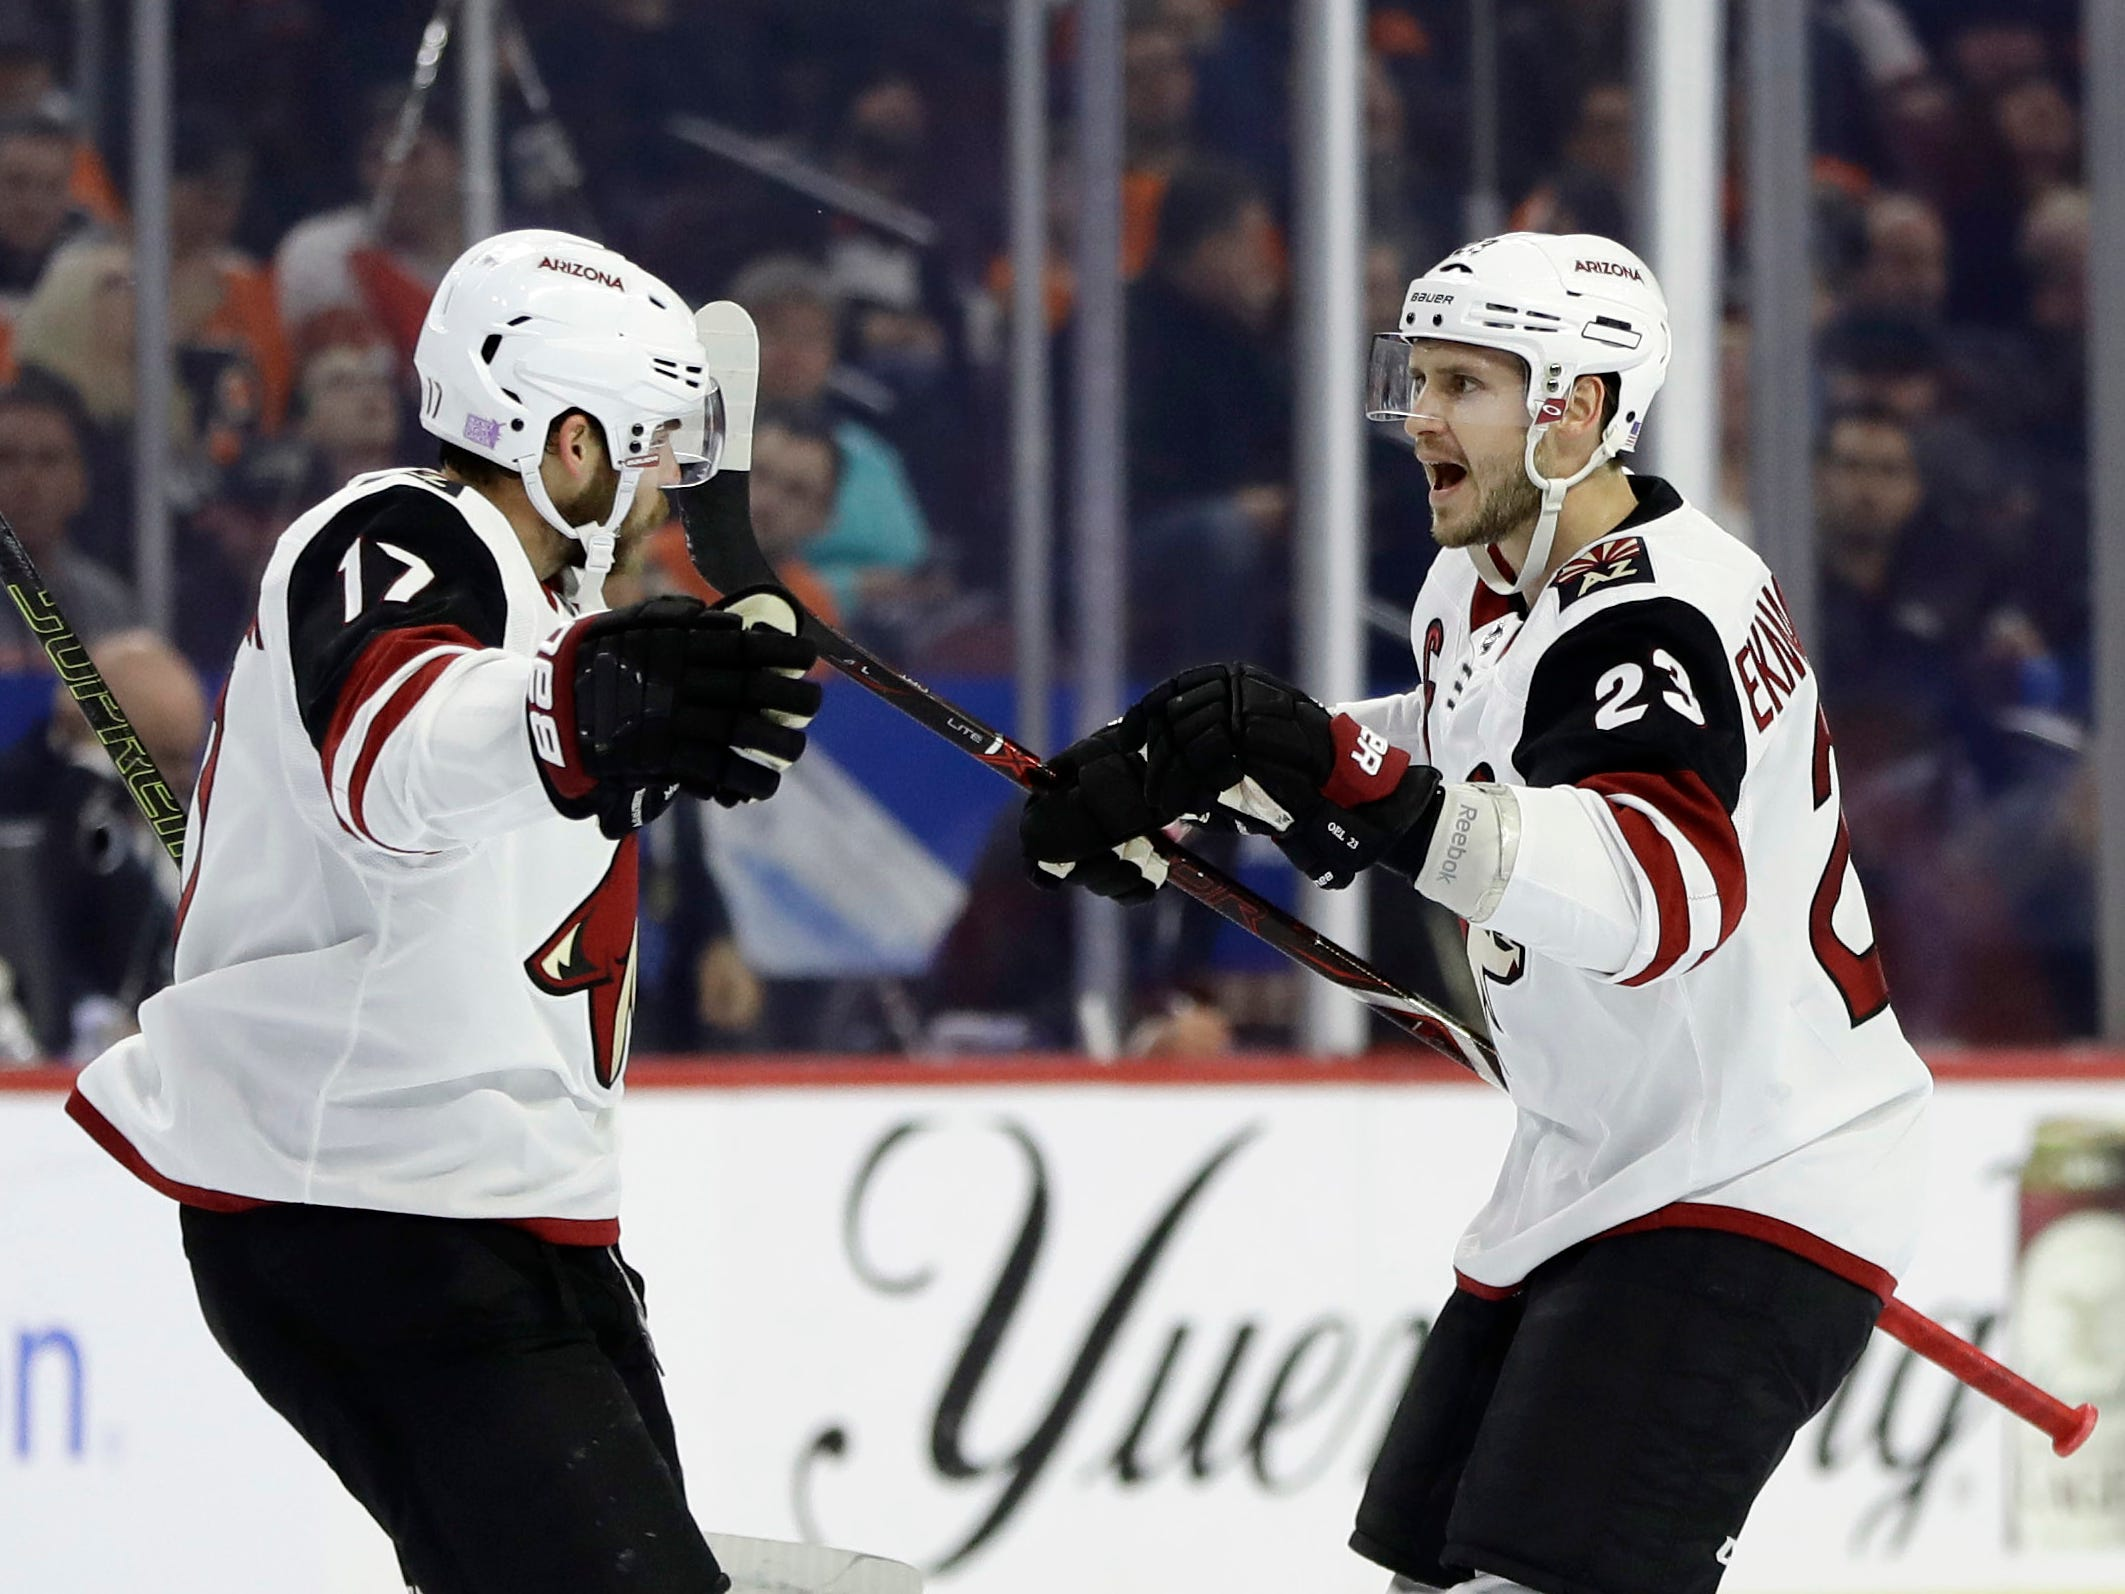 Arizona Coyotes' Oliver Ekman-Larsson, right, and Alex Galchenyuk celebrate after Ekman-Larsson's goal against the Philadelphia Flyers during the first period of an NHL hockey game, Thursday, Nov. 8, 2018, in Philadelphia. (AP Photo/Matt Slocum)